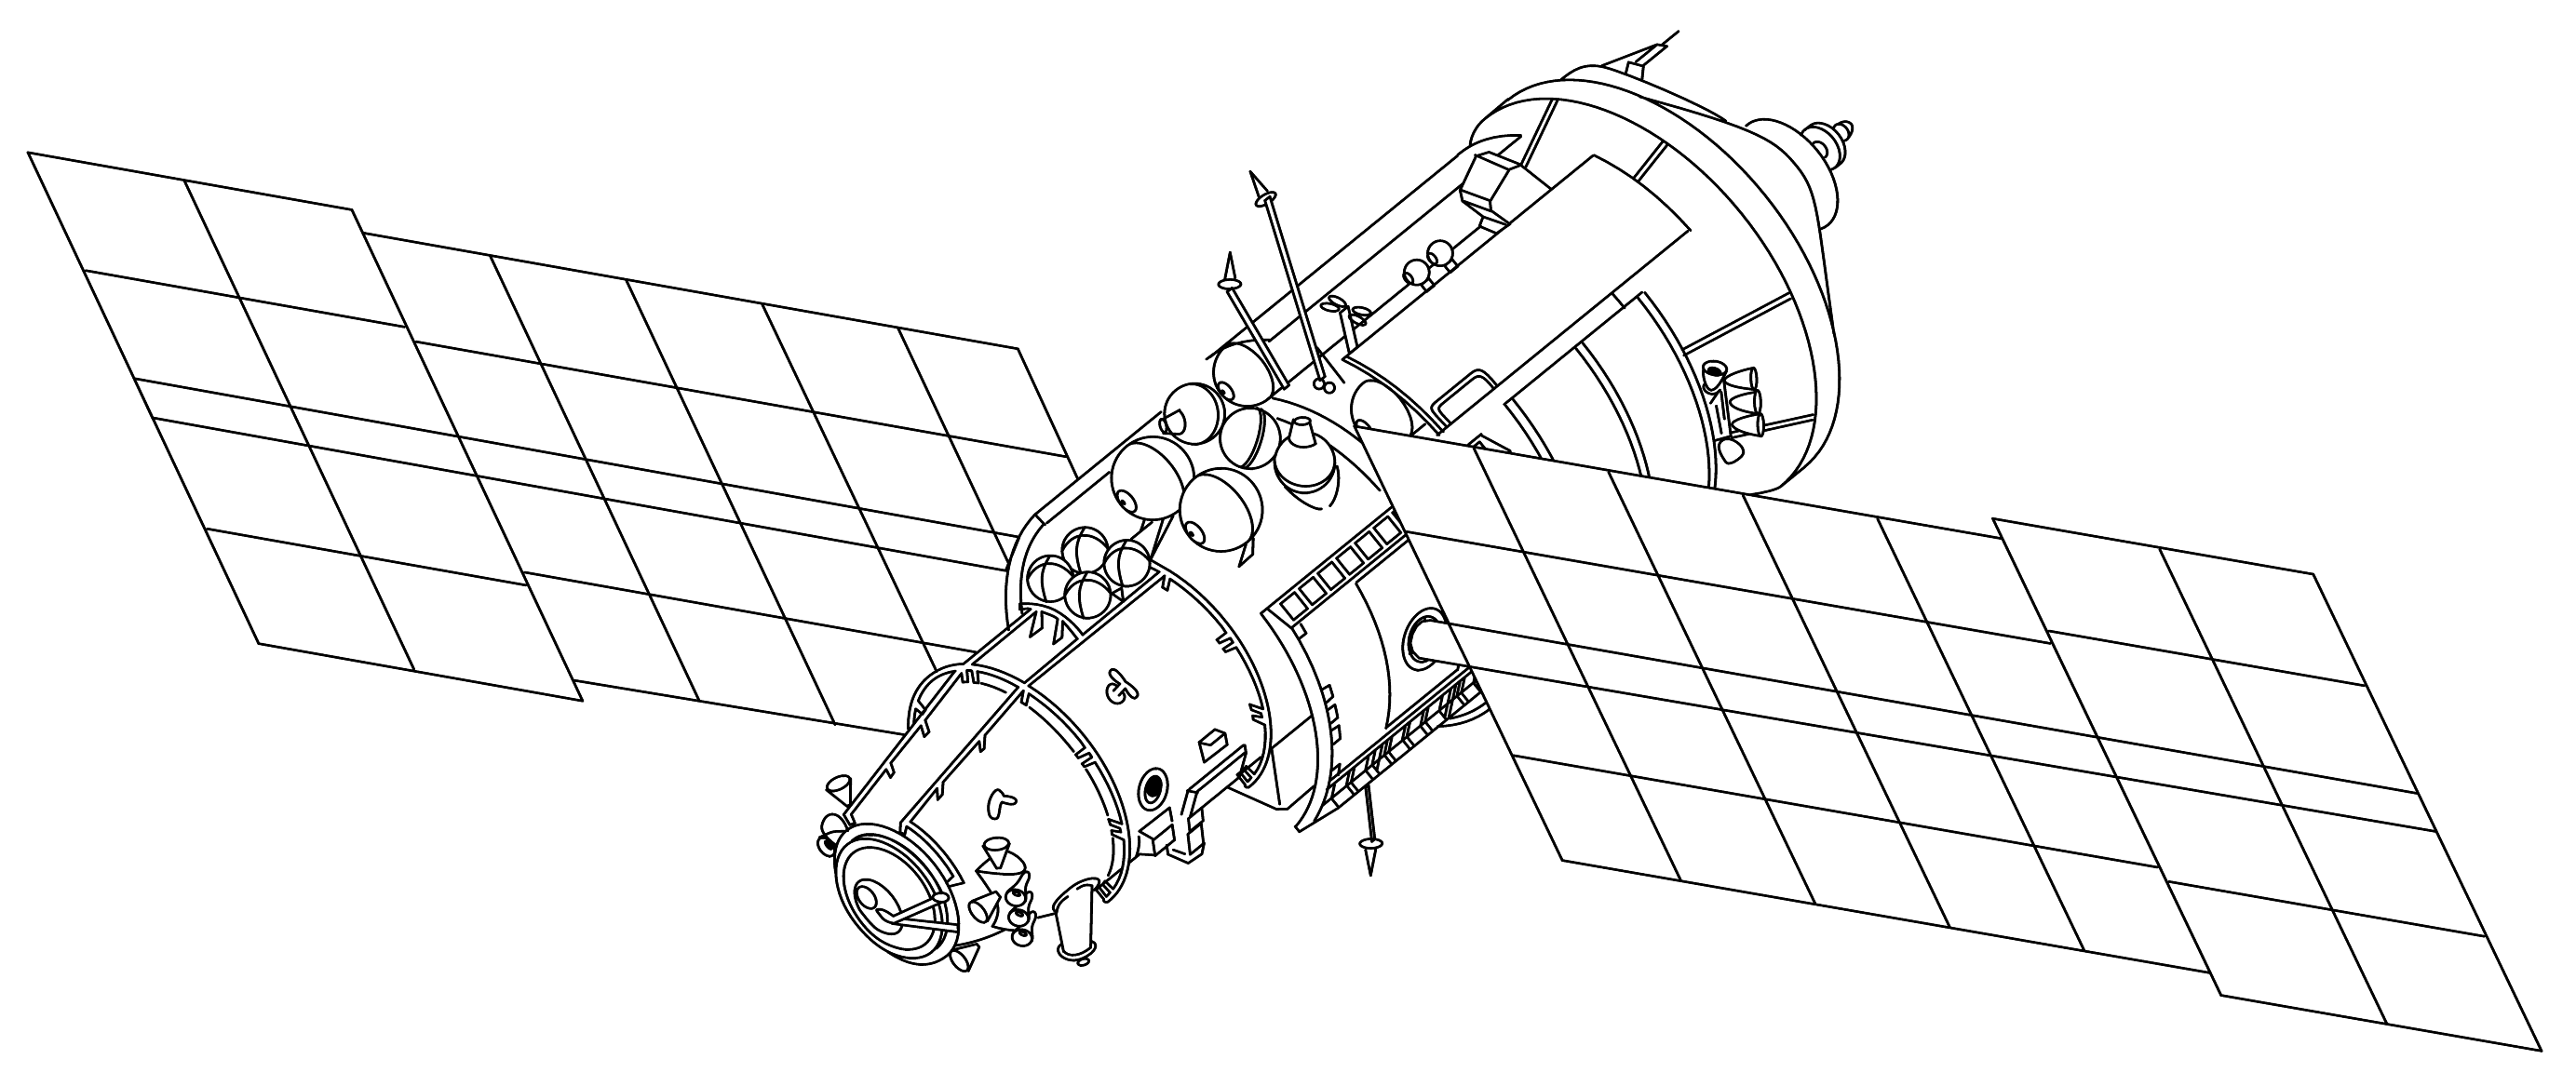 images of surveyor 1 spacecraft drawing spacehero